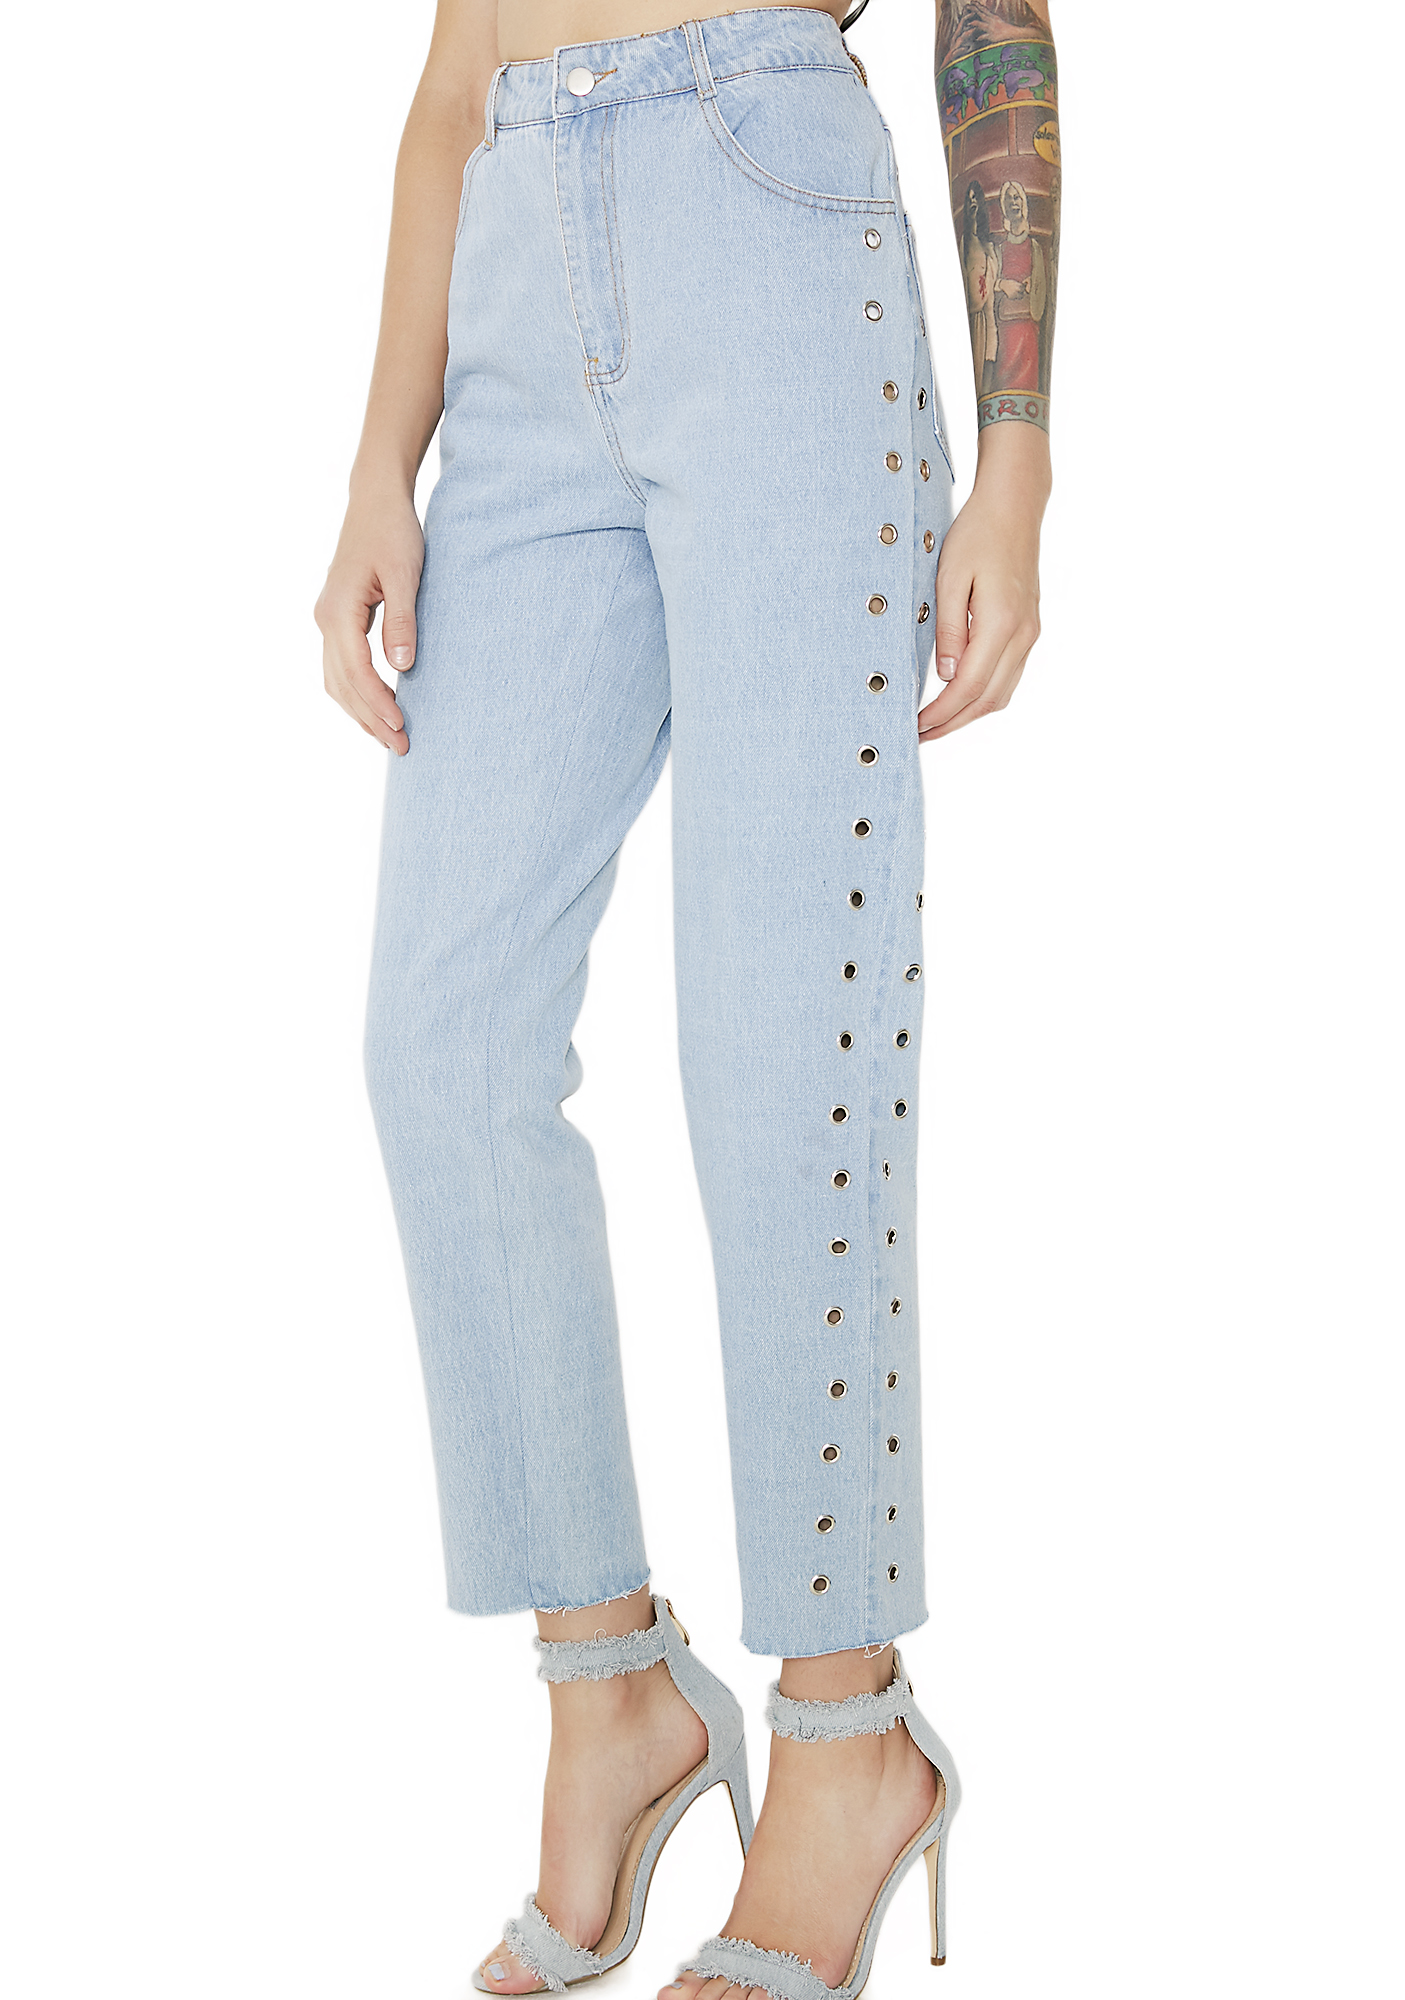 High Waisted Denim Grommet Jeans